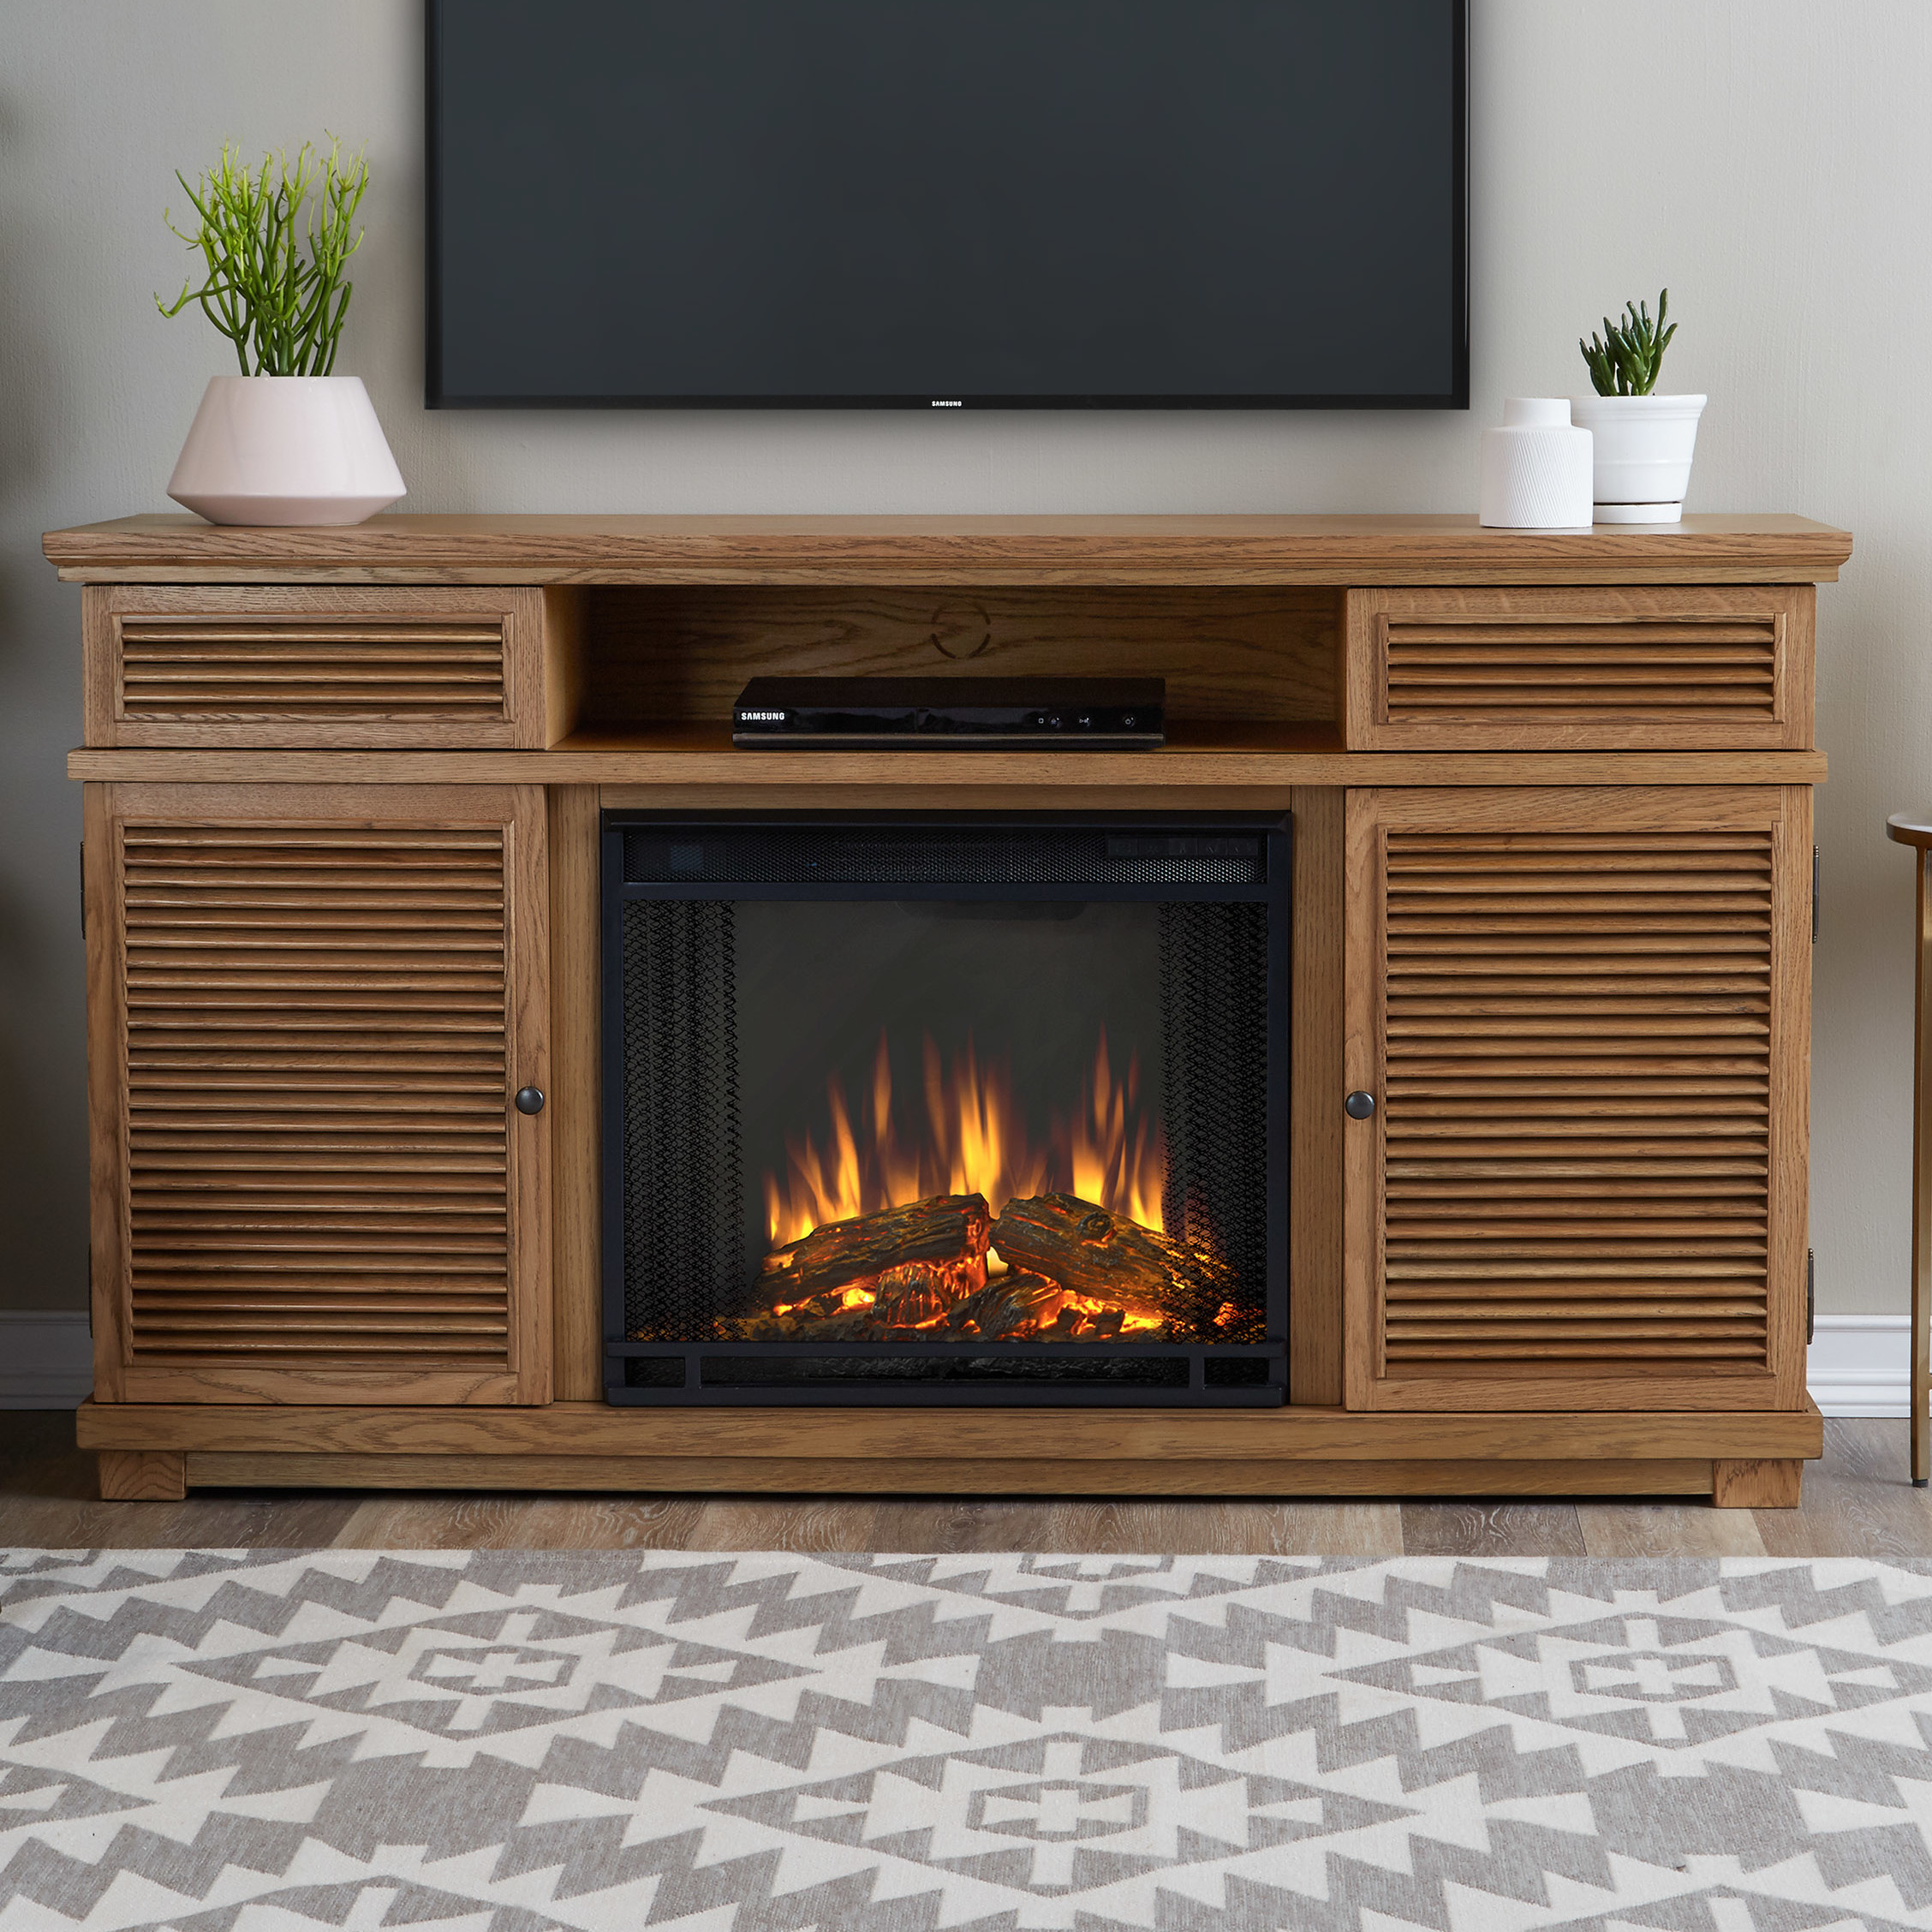 Best ideas about Real Flame Fireplace . Save or Pin Real Flame Cavallo Electric Fireplace Now.